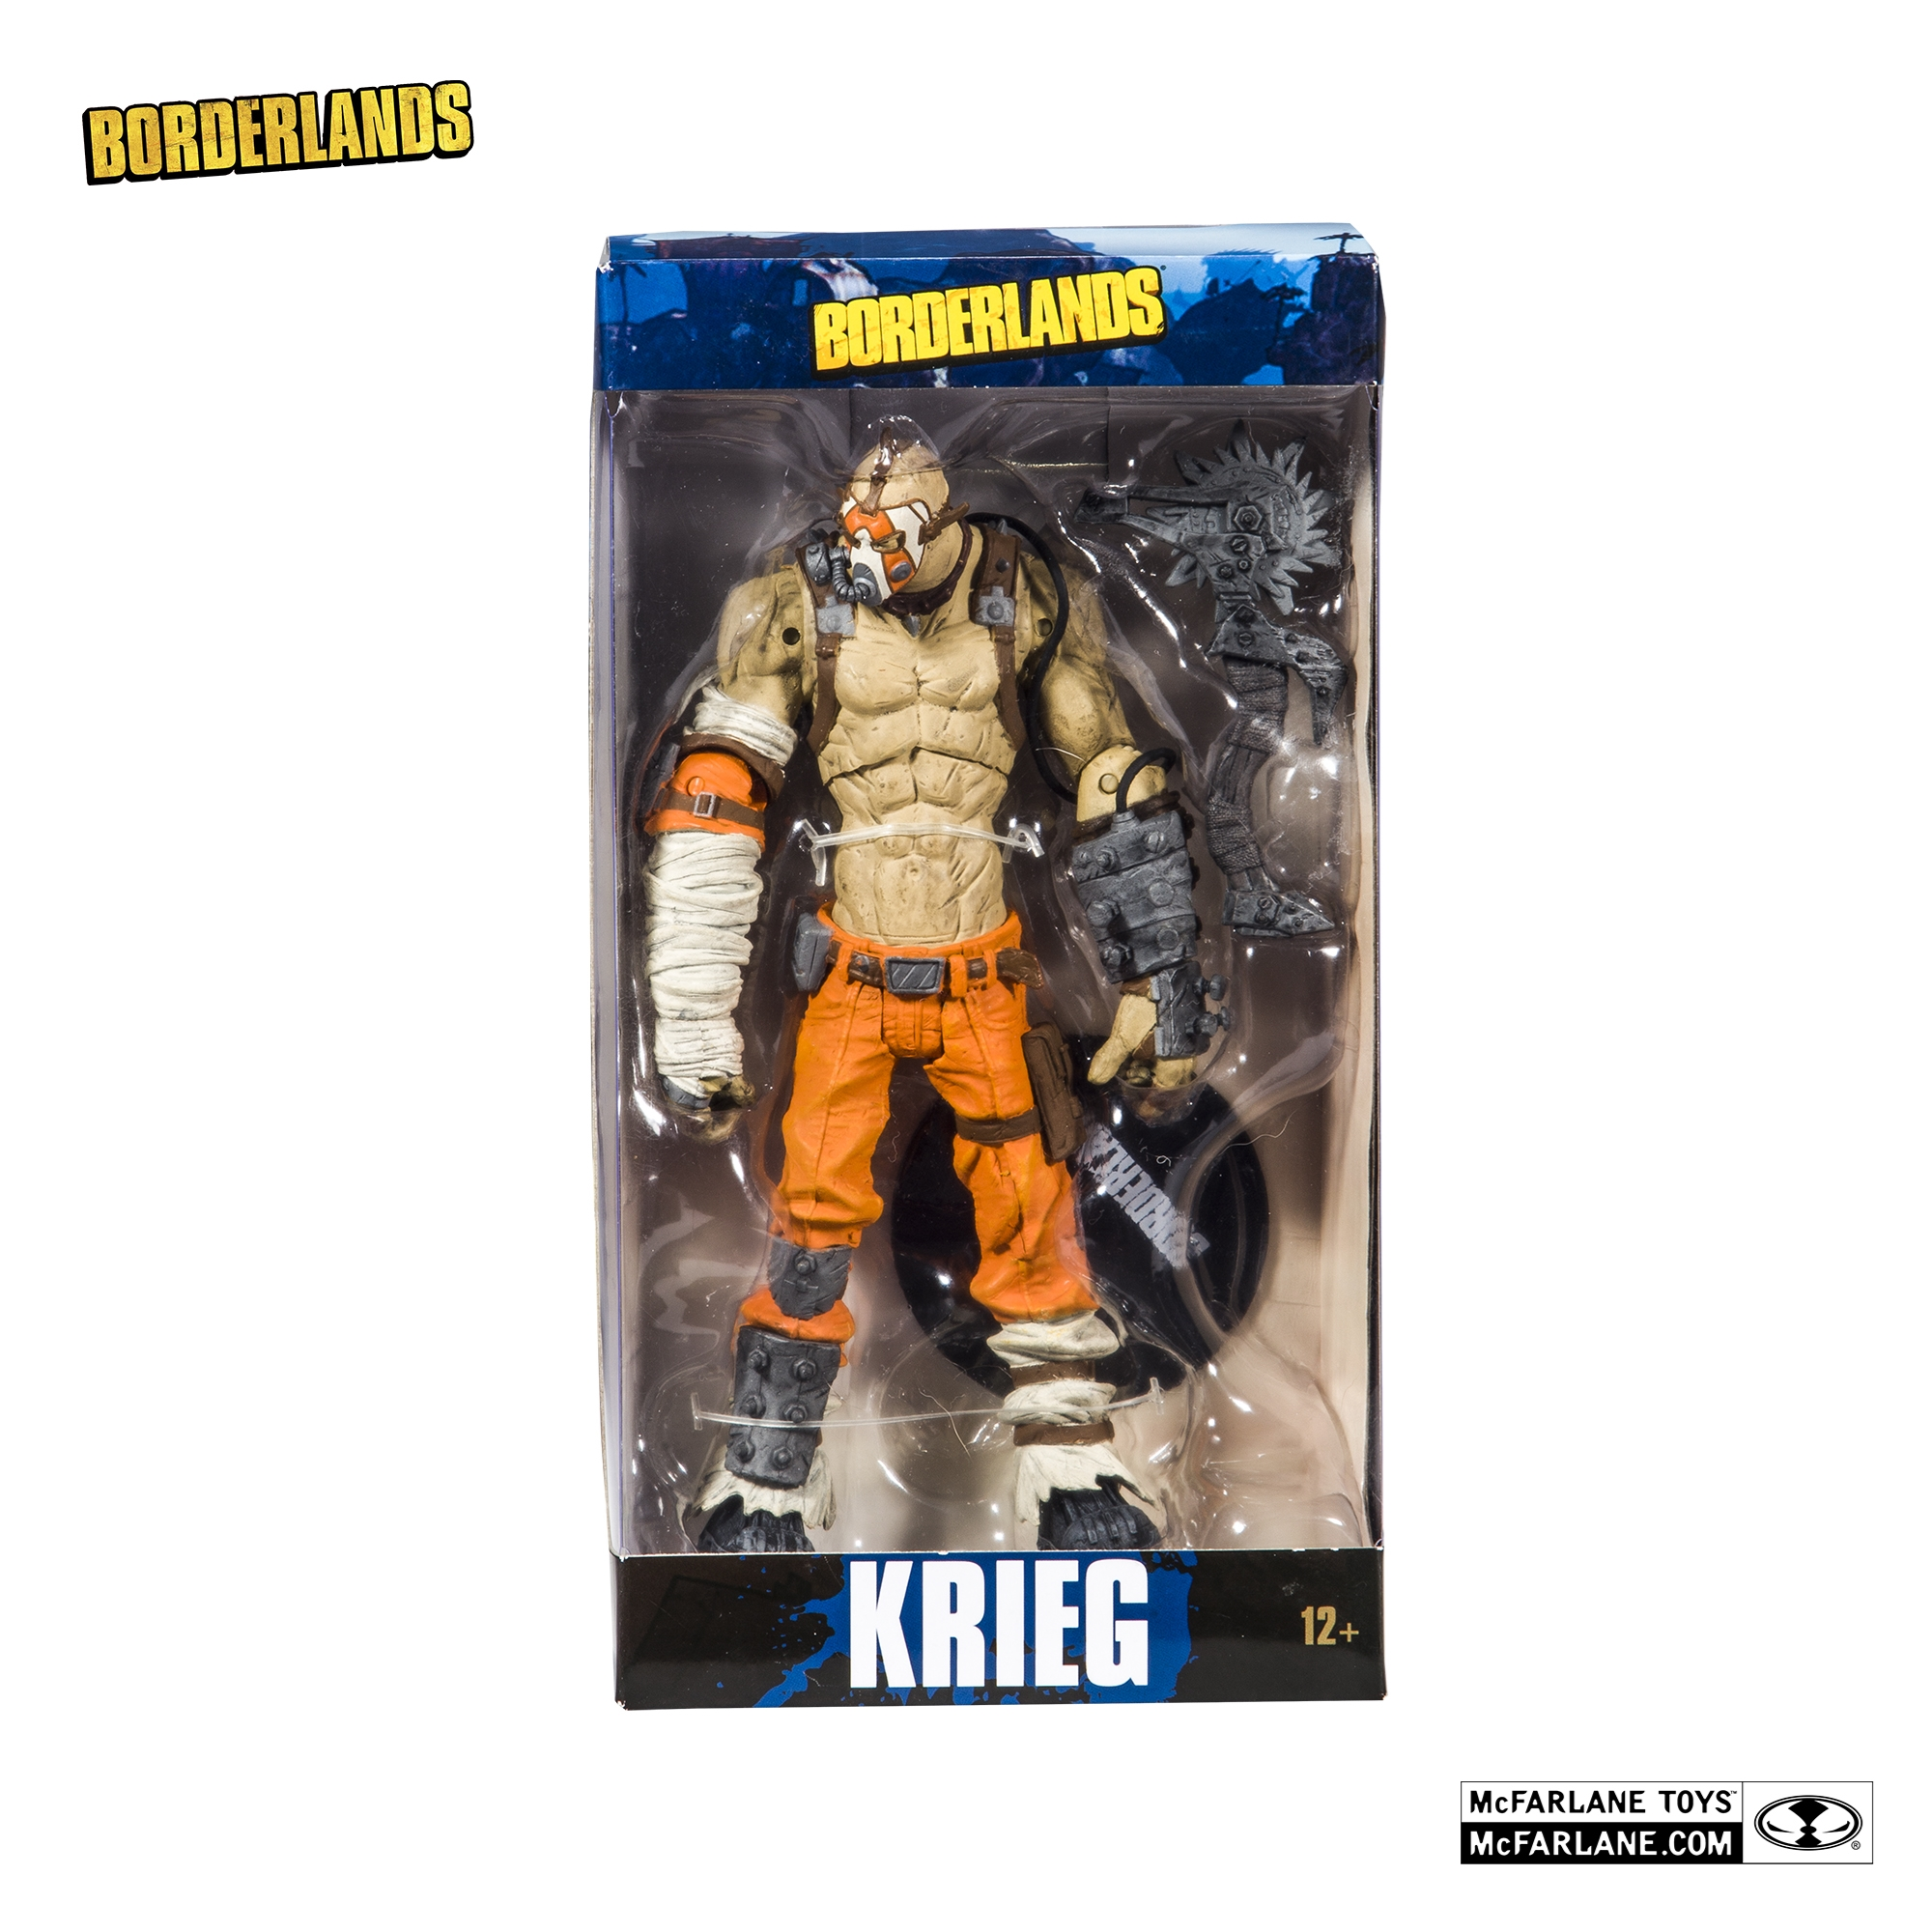 Borderlands: Krieg Figure